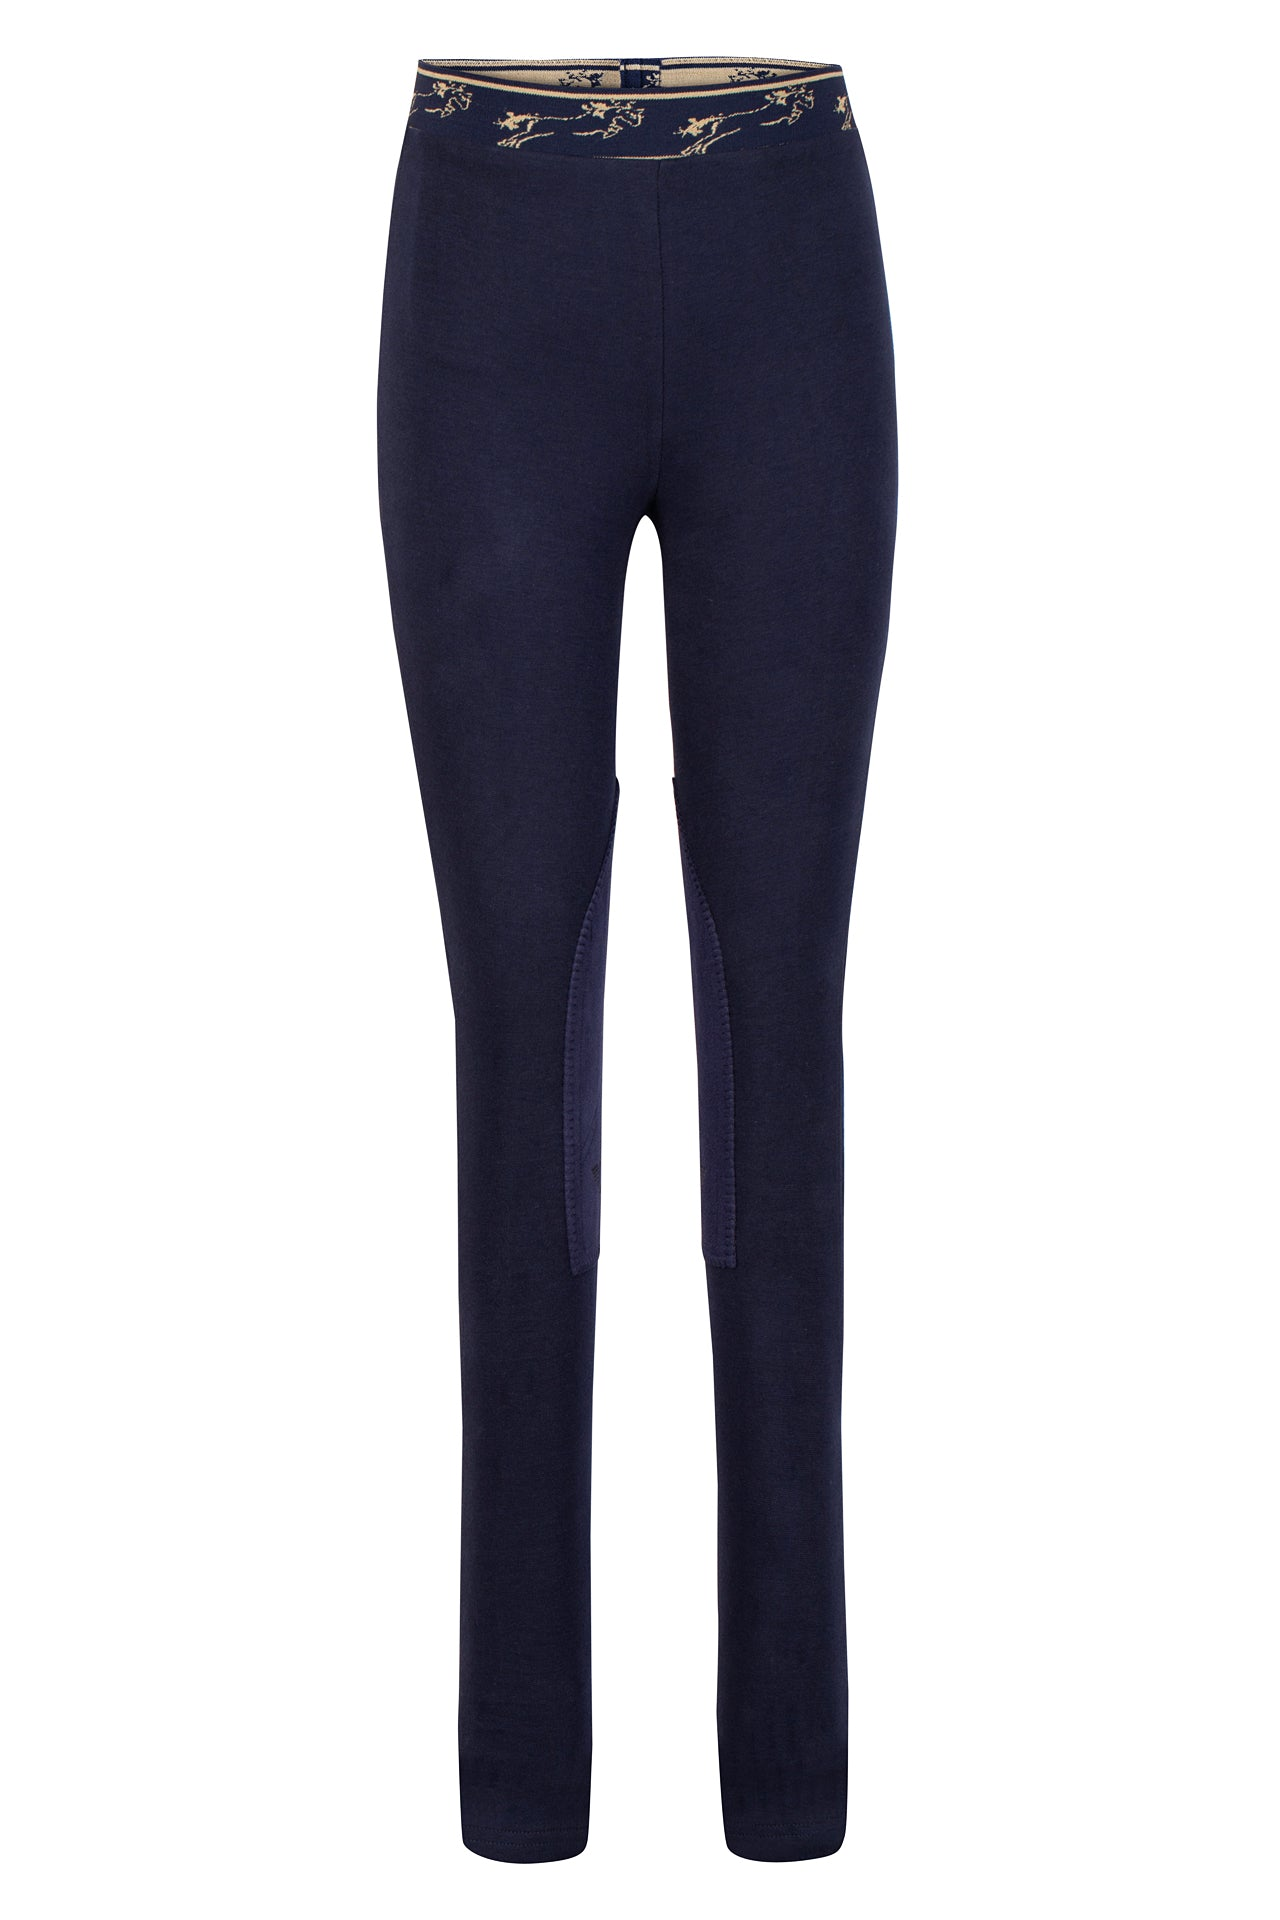 TuffRider Children's Cotton Schooler Jodhpurs - Breeches.com